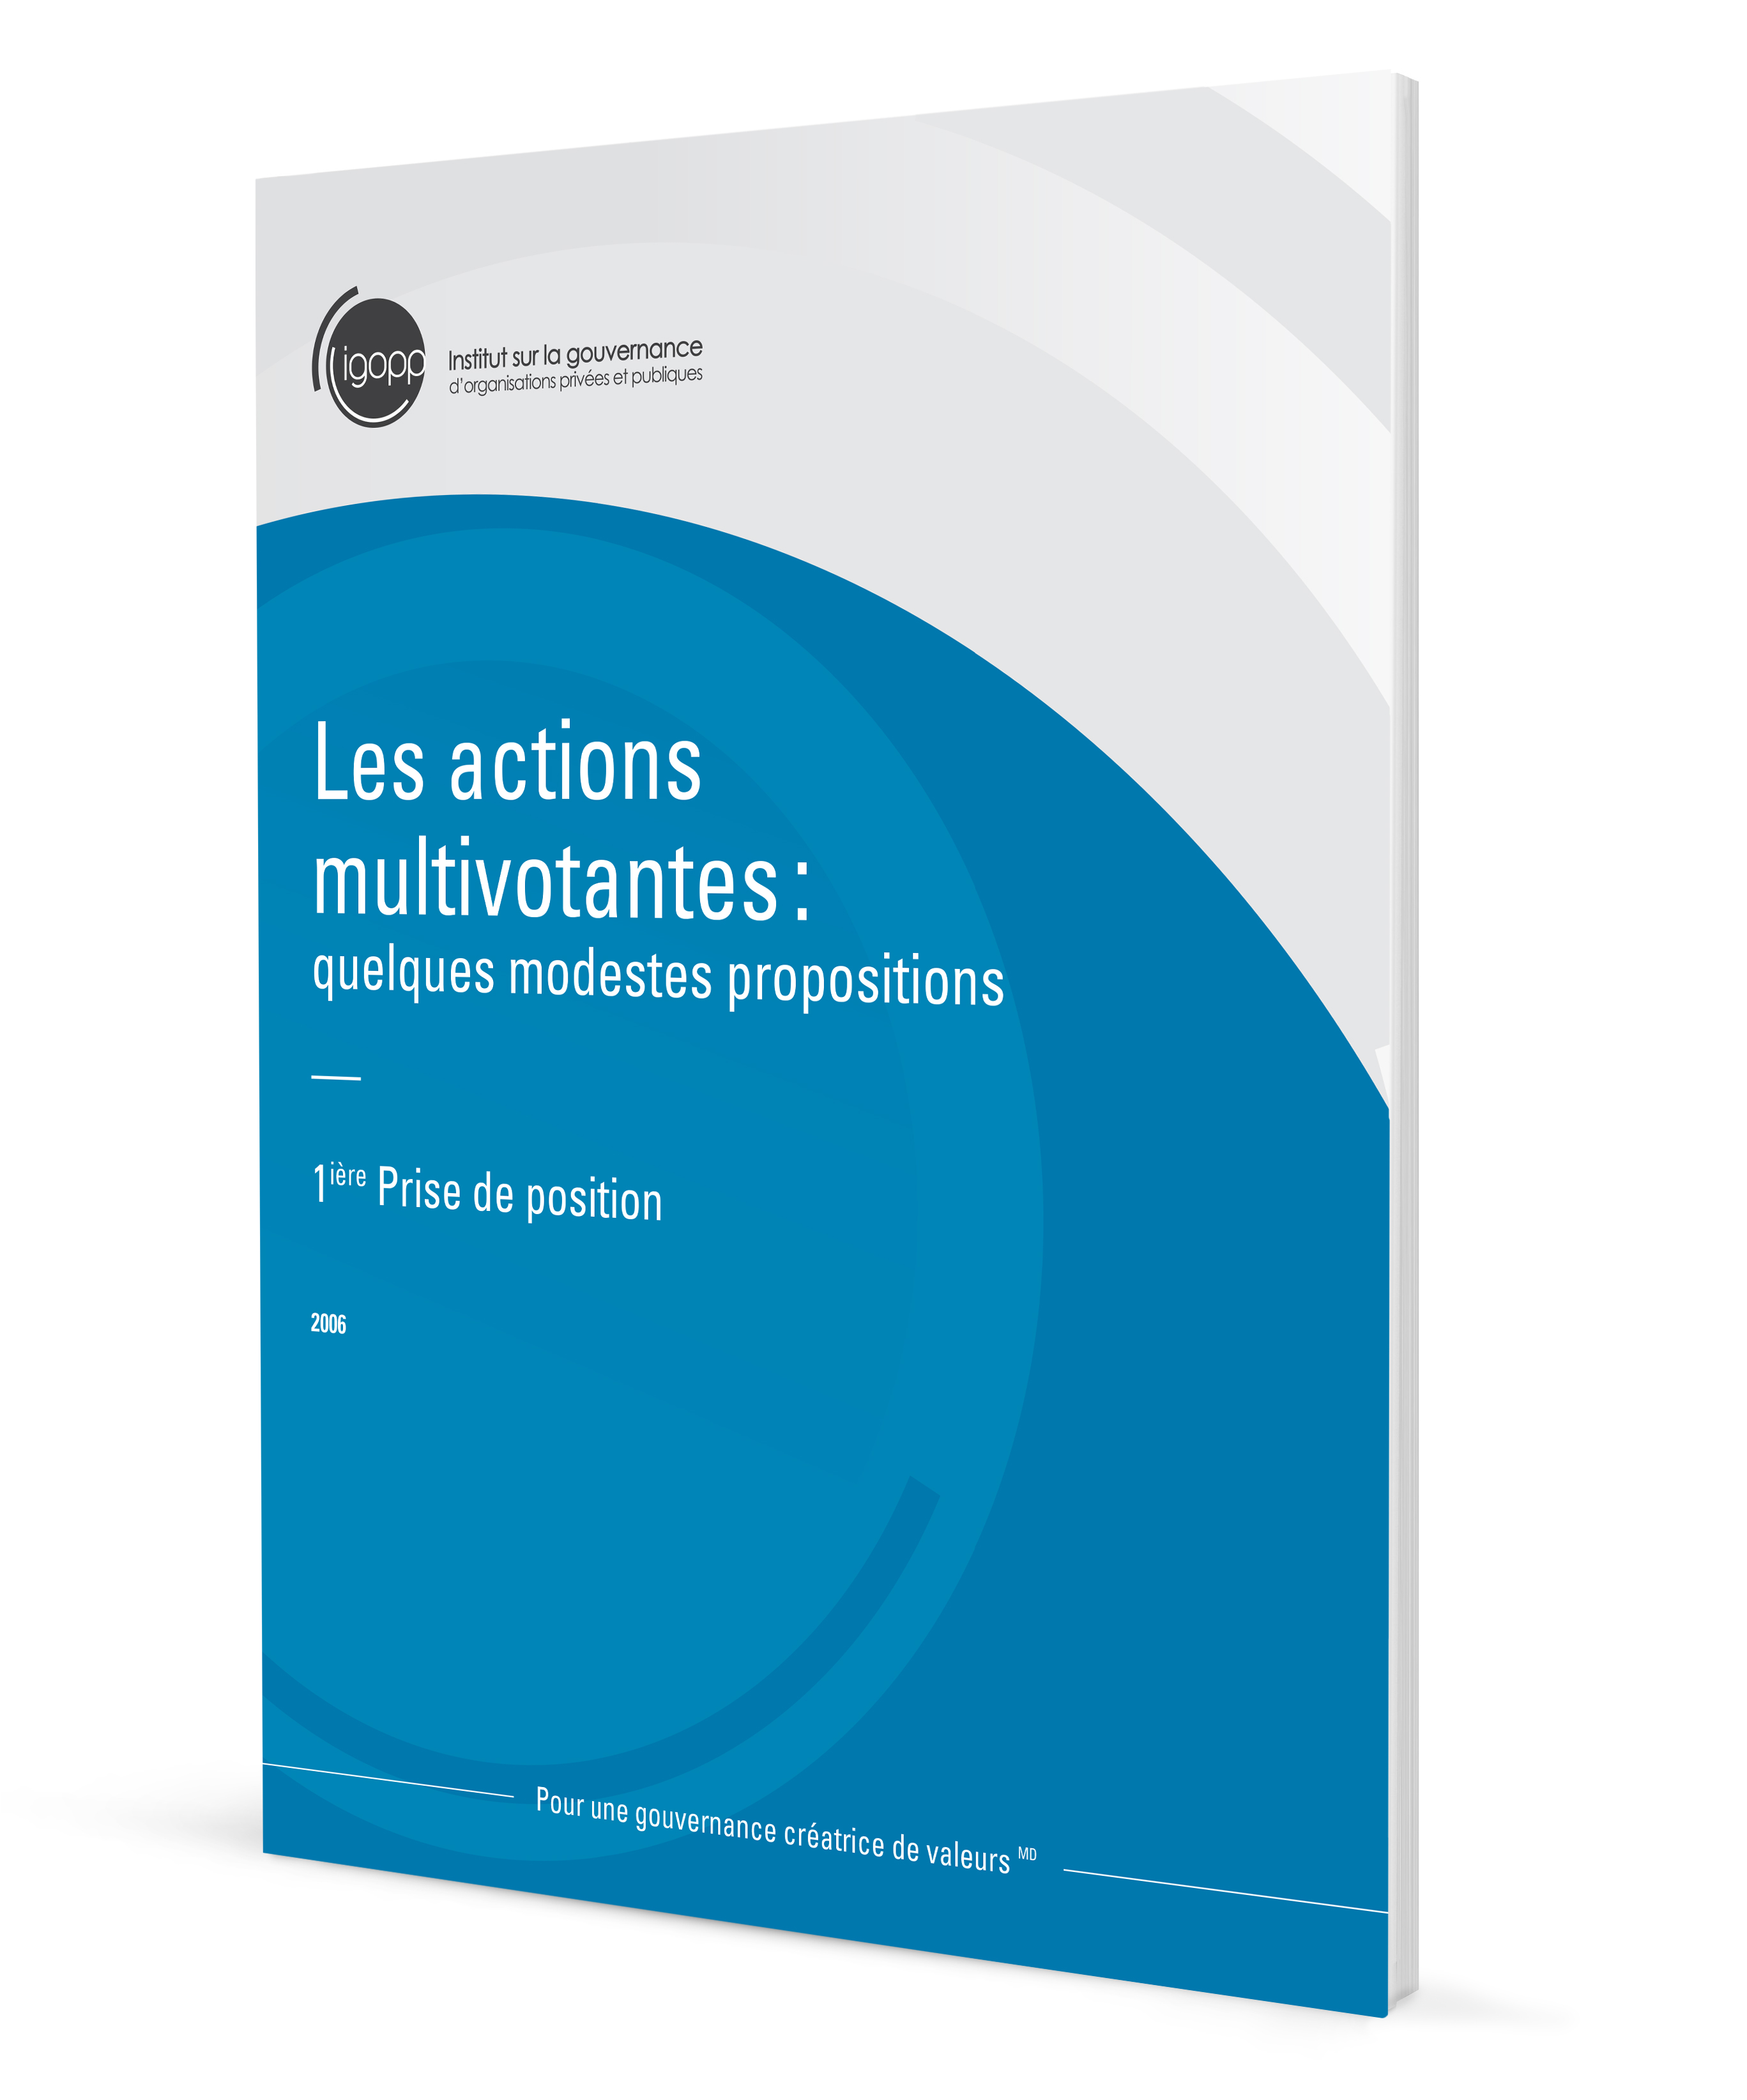 Les actions multivotantes